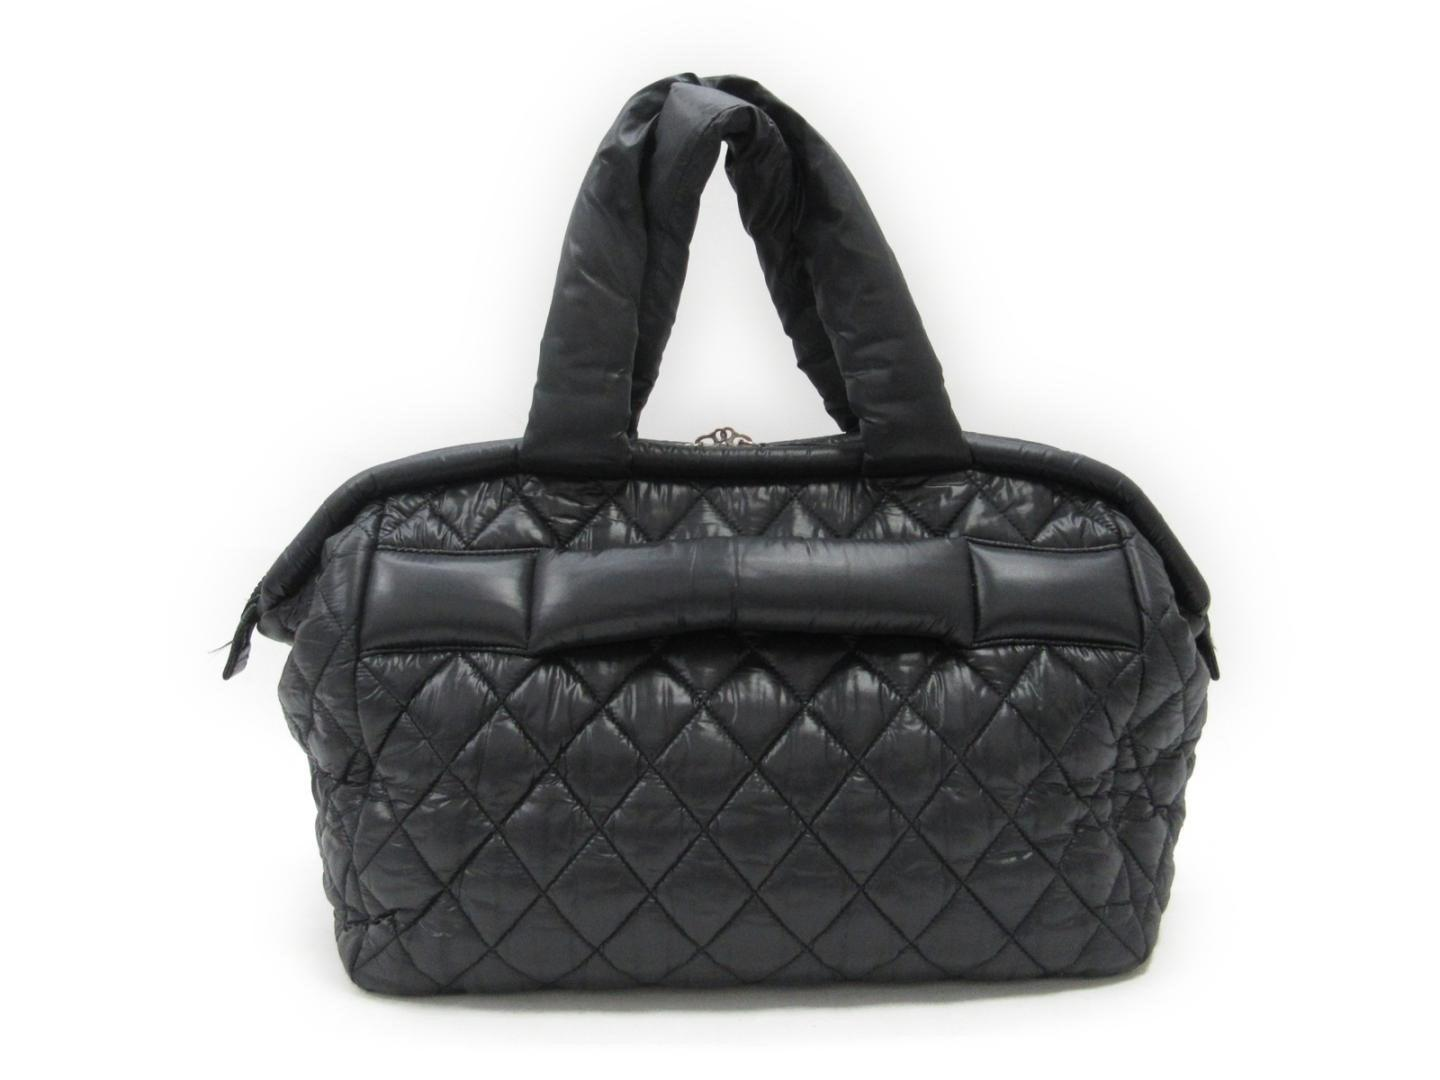 664d7b85289a78 Lyst - Chanel Coco Cocoon Tote Bag Nylon Black in Black